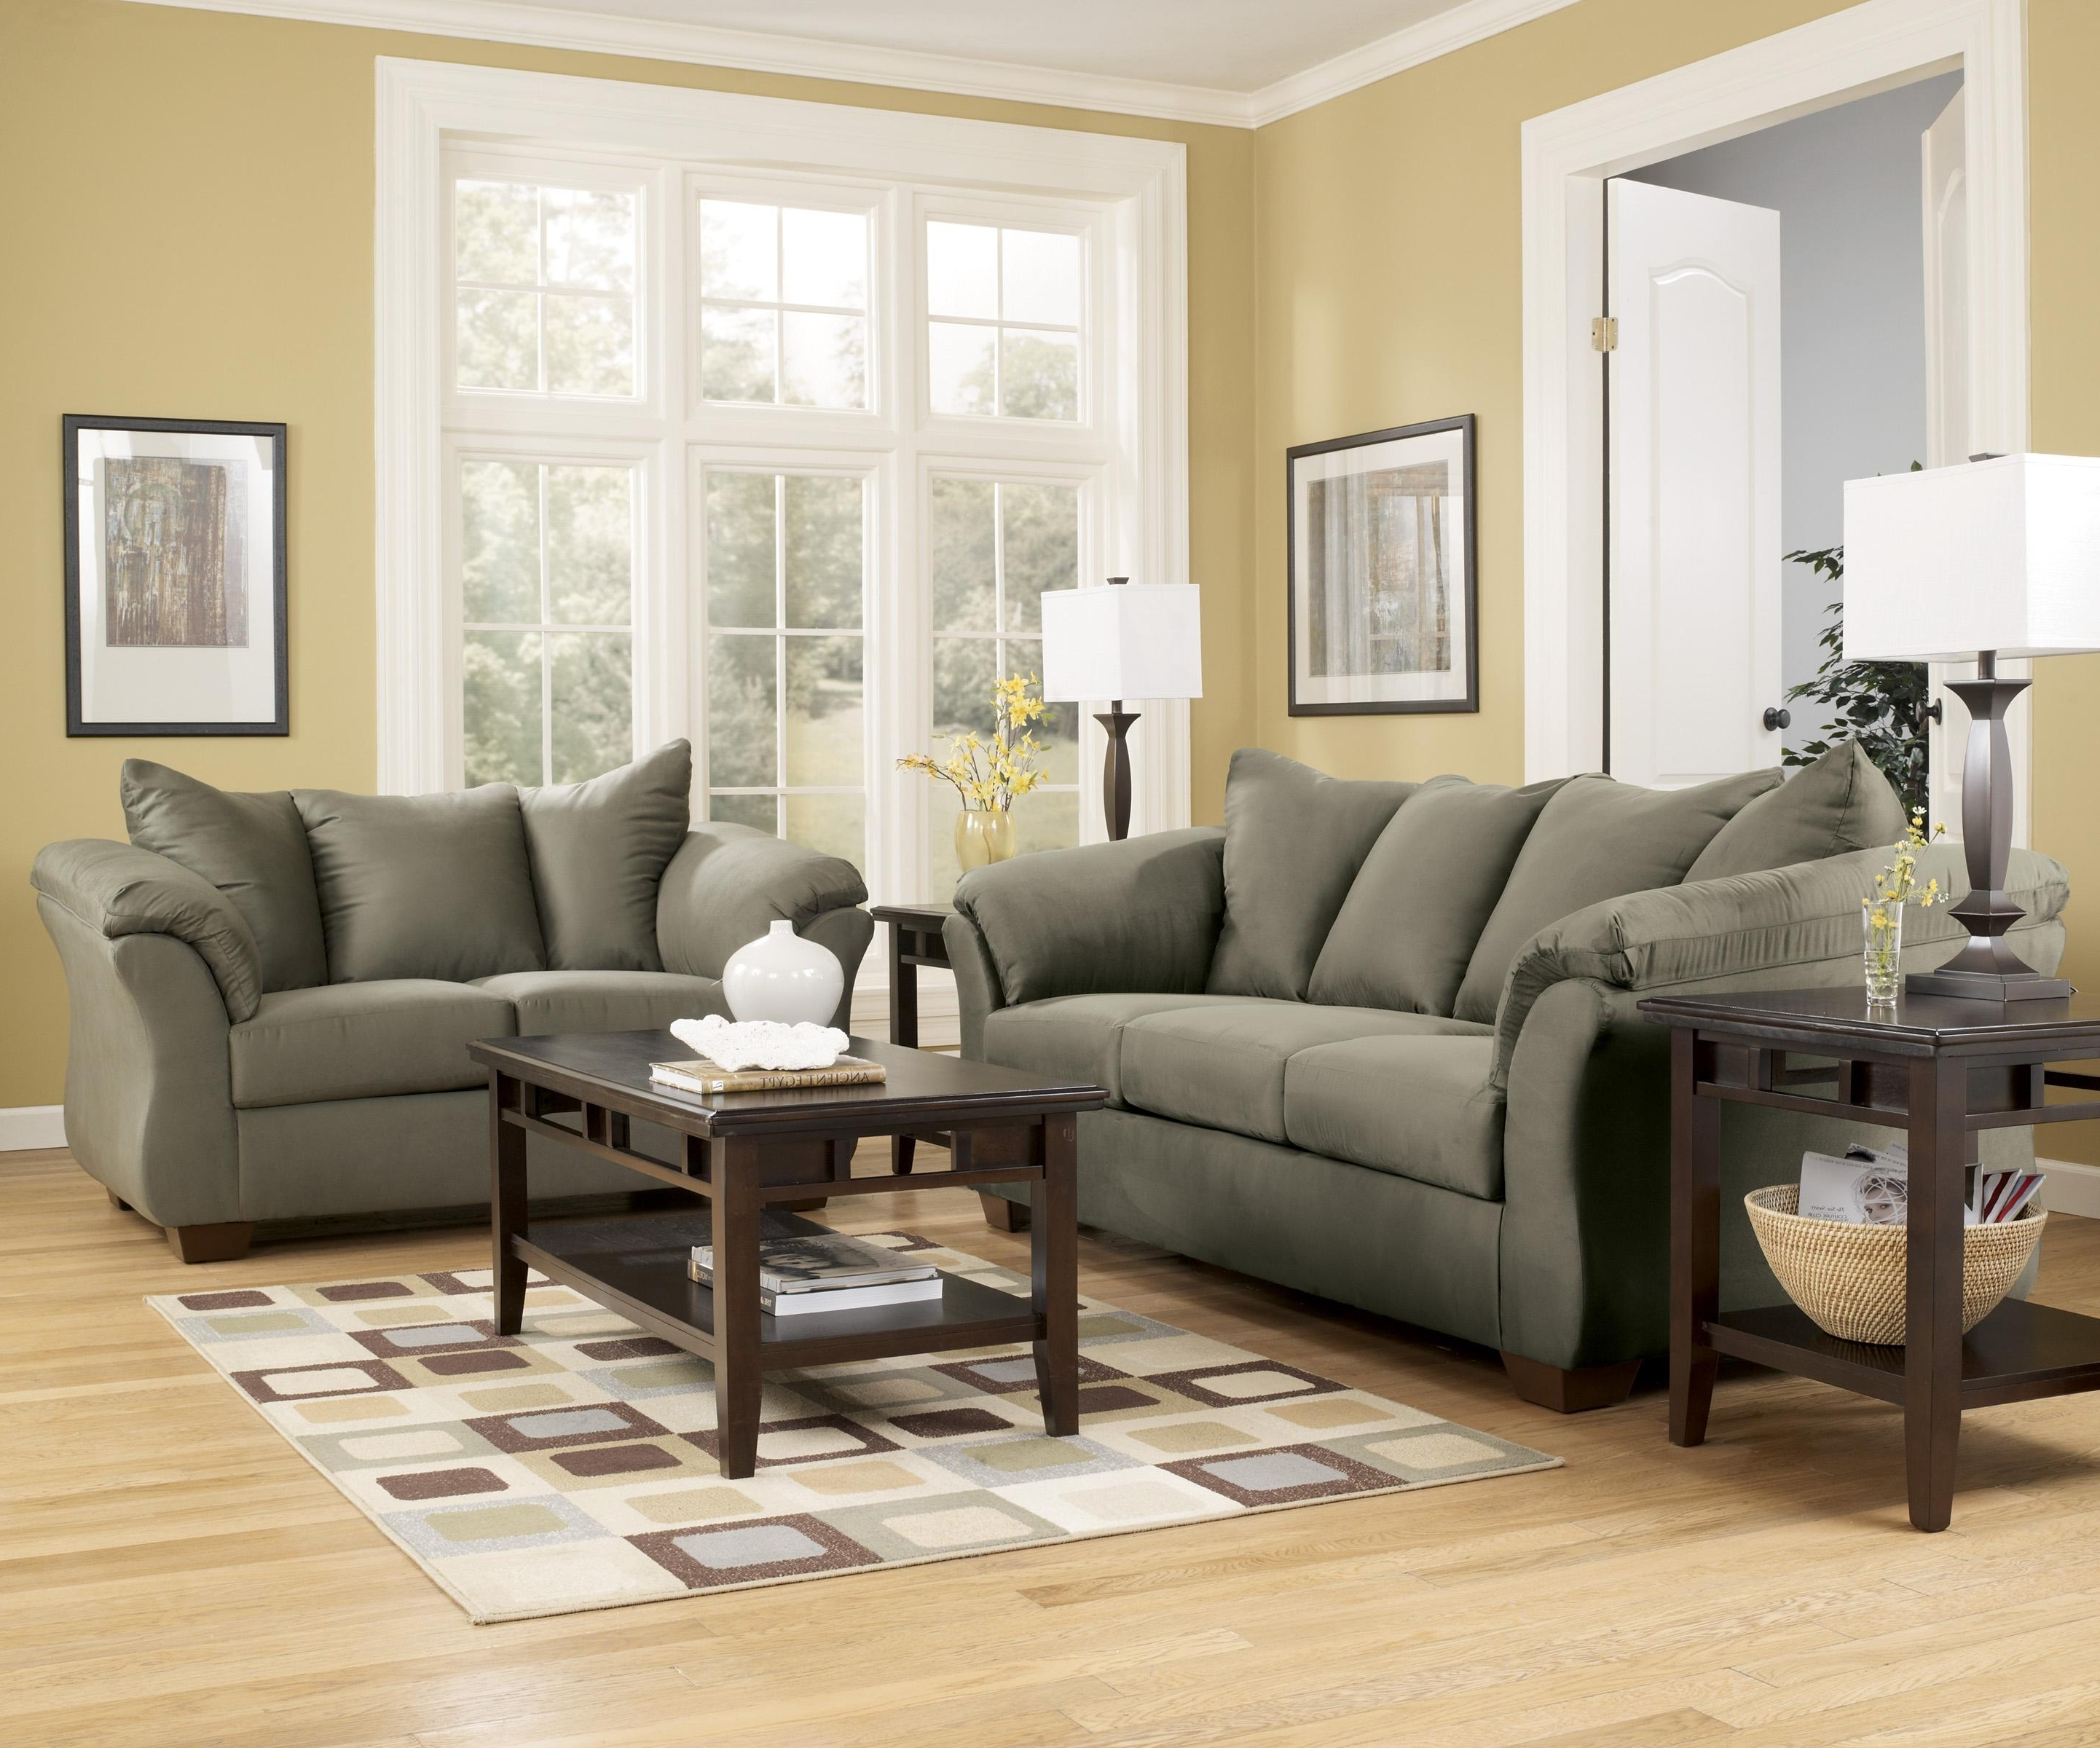 Best And Newest 102X102 Sectional Sofas In Signature Designashley Darcy – Sage Contemporary Sectional (View 4 of 15)